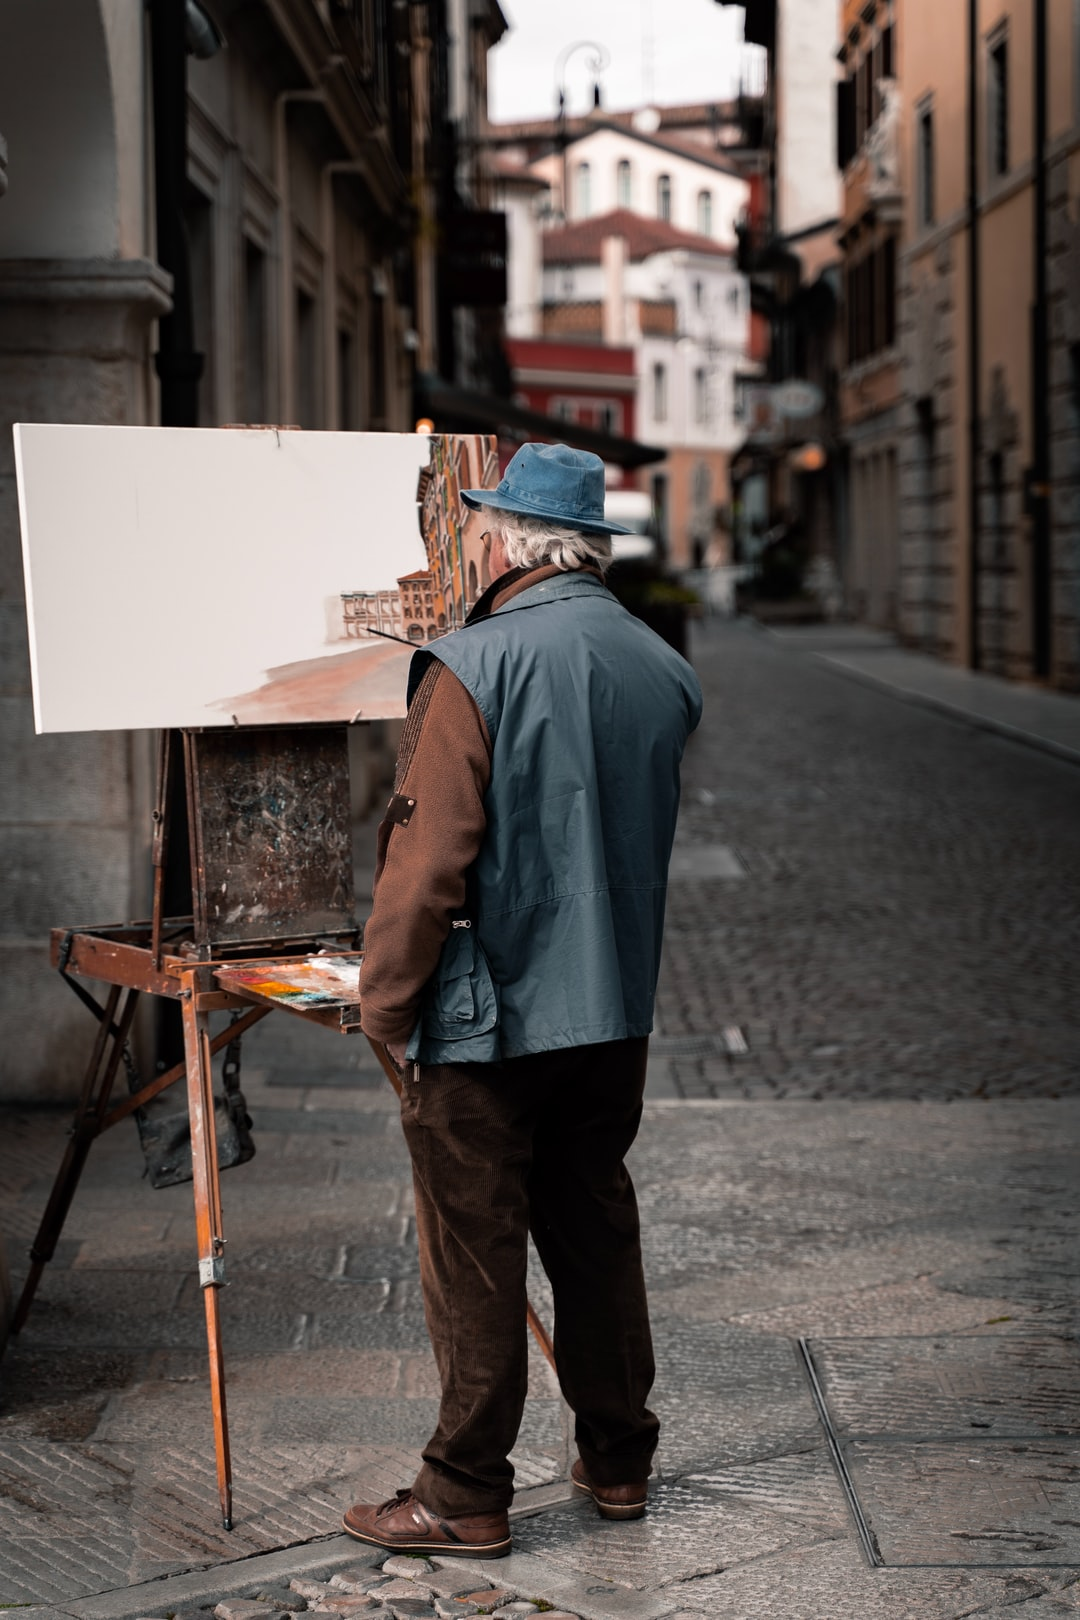 A painter working in the middle of Udine's main square